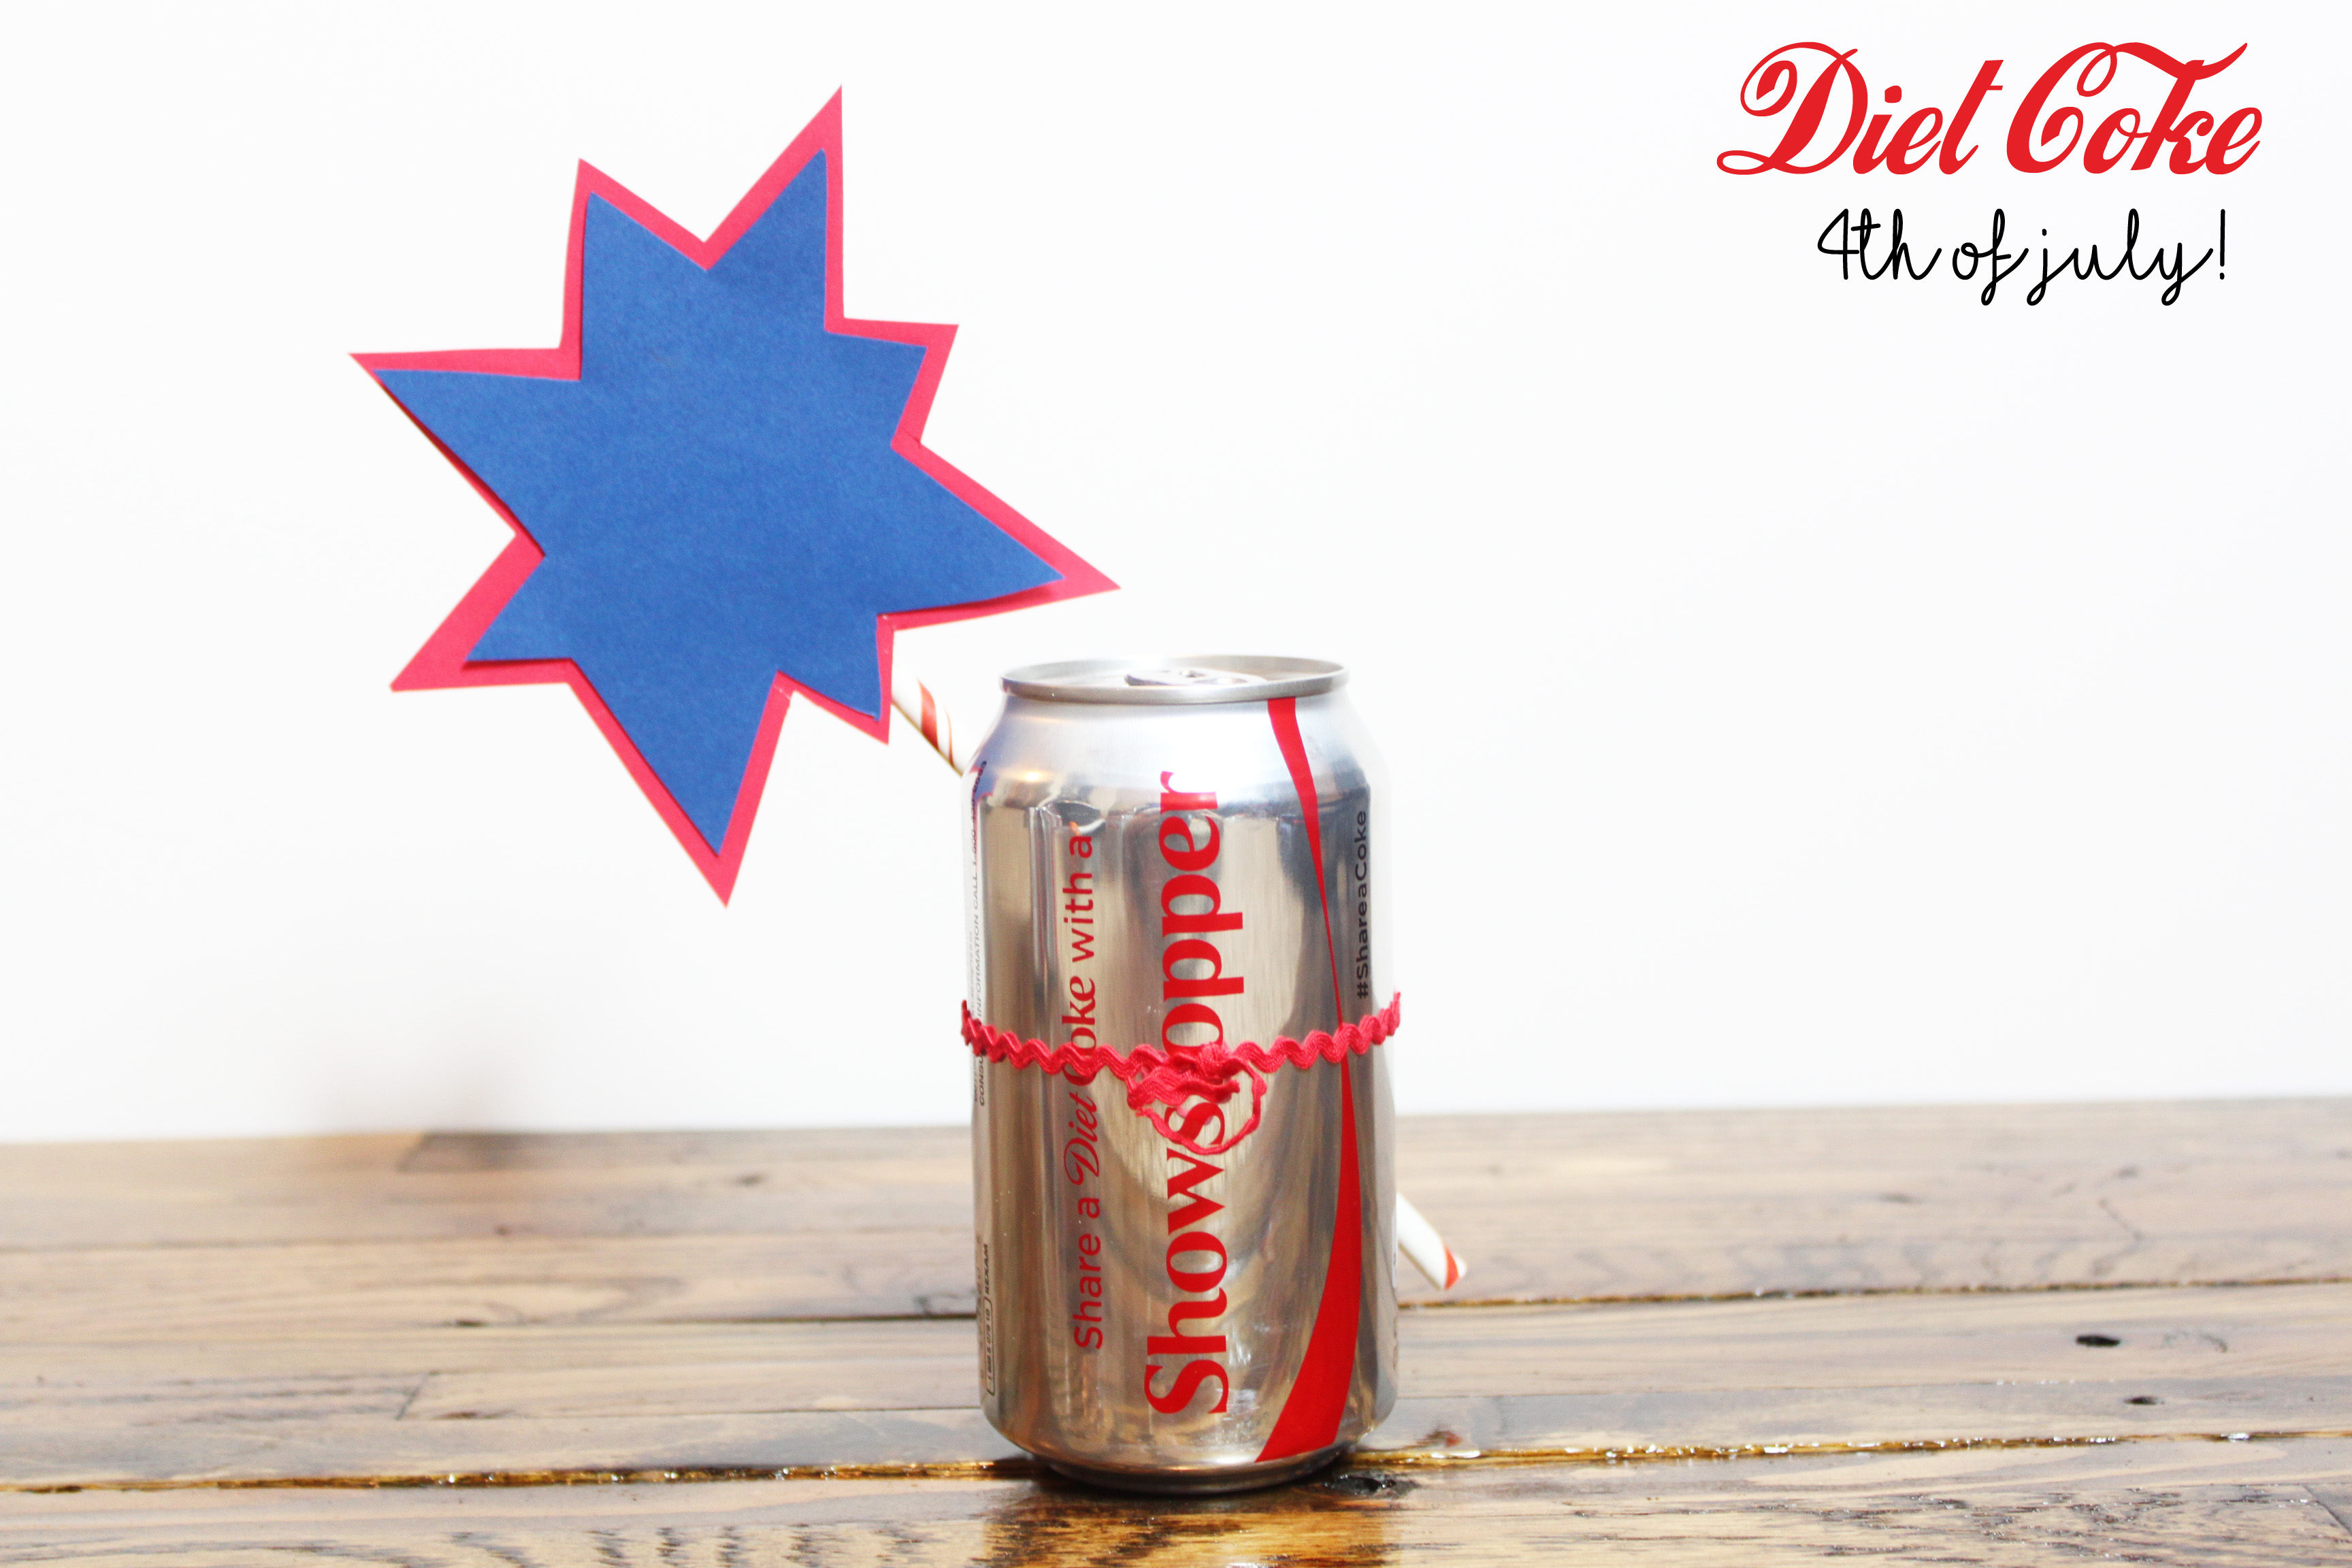 Diet Coke New 4th of July 2